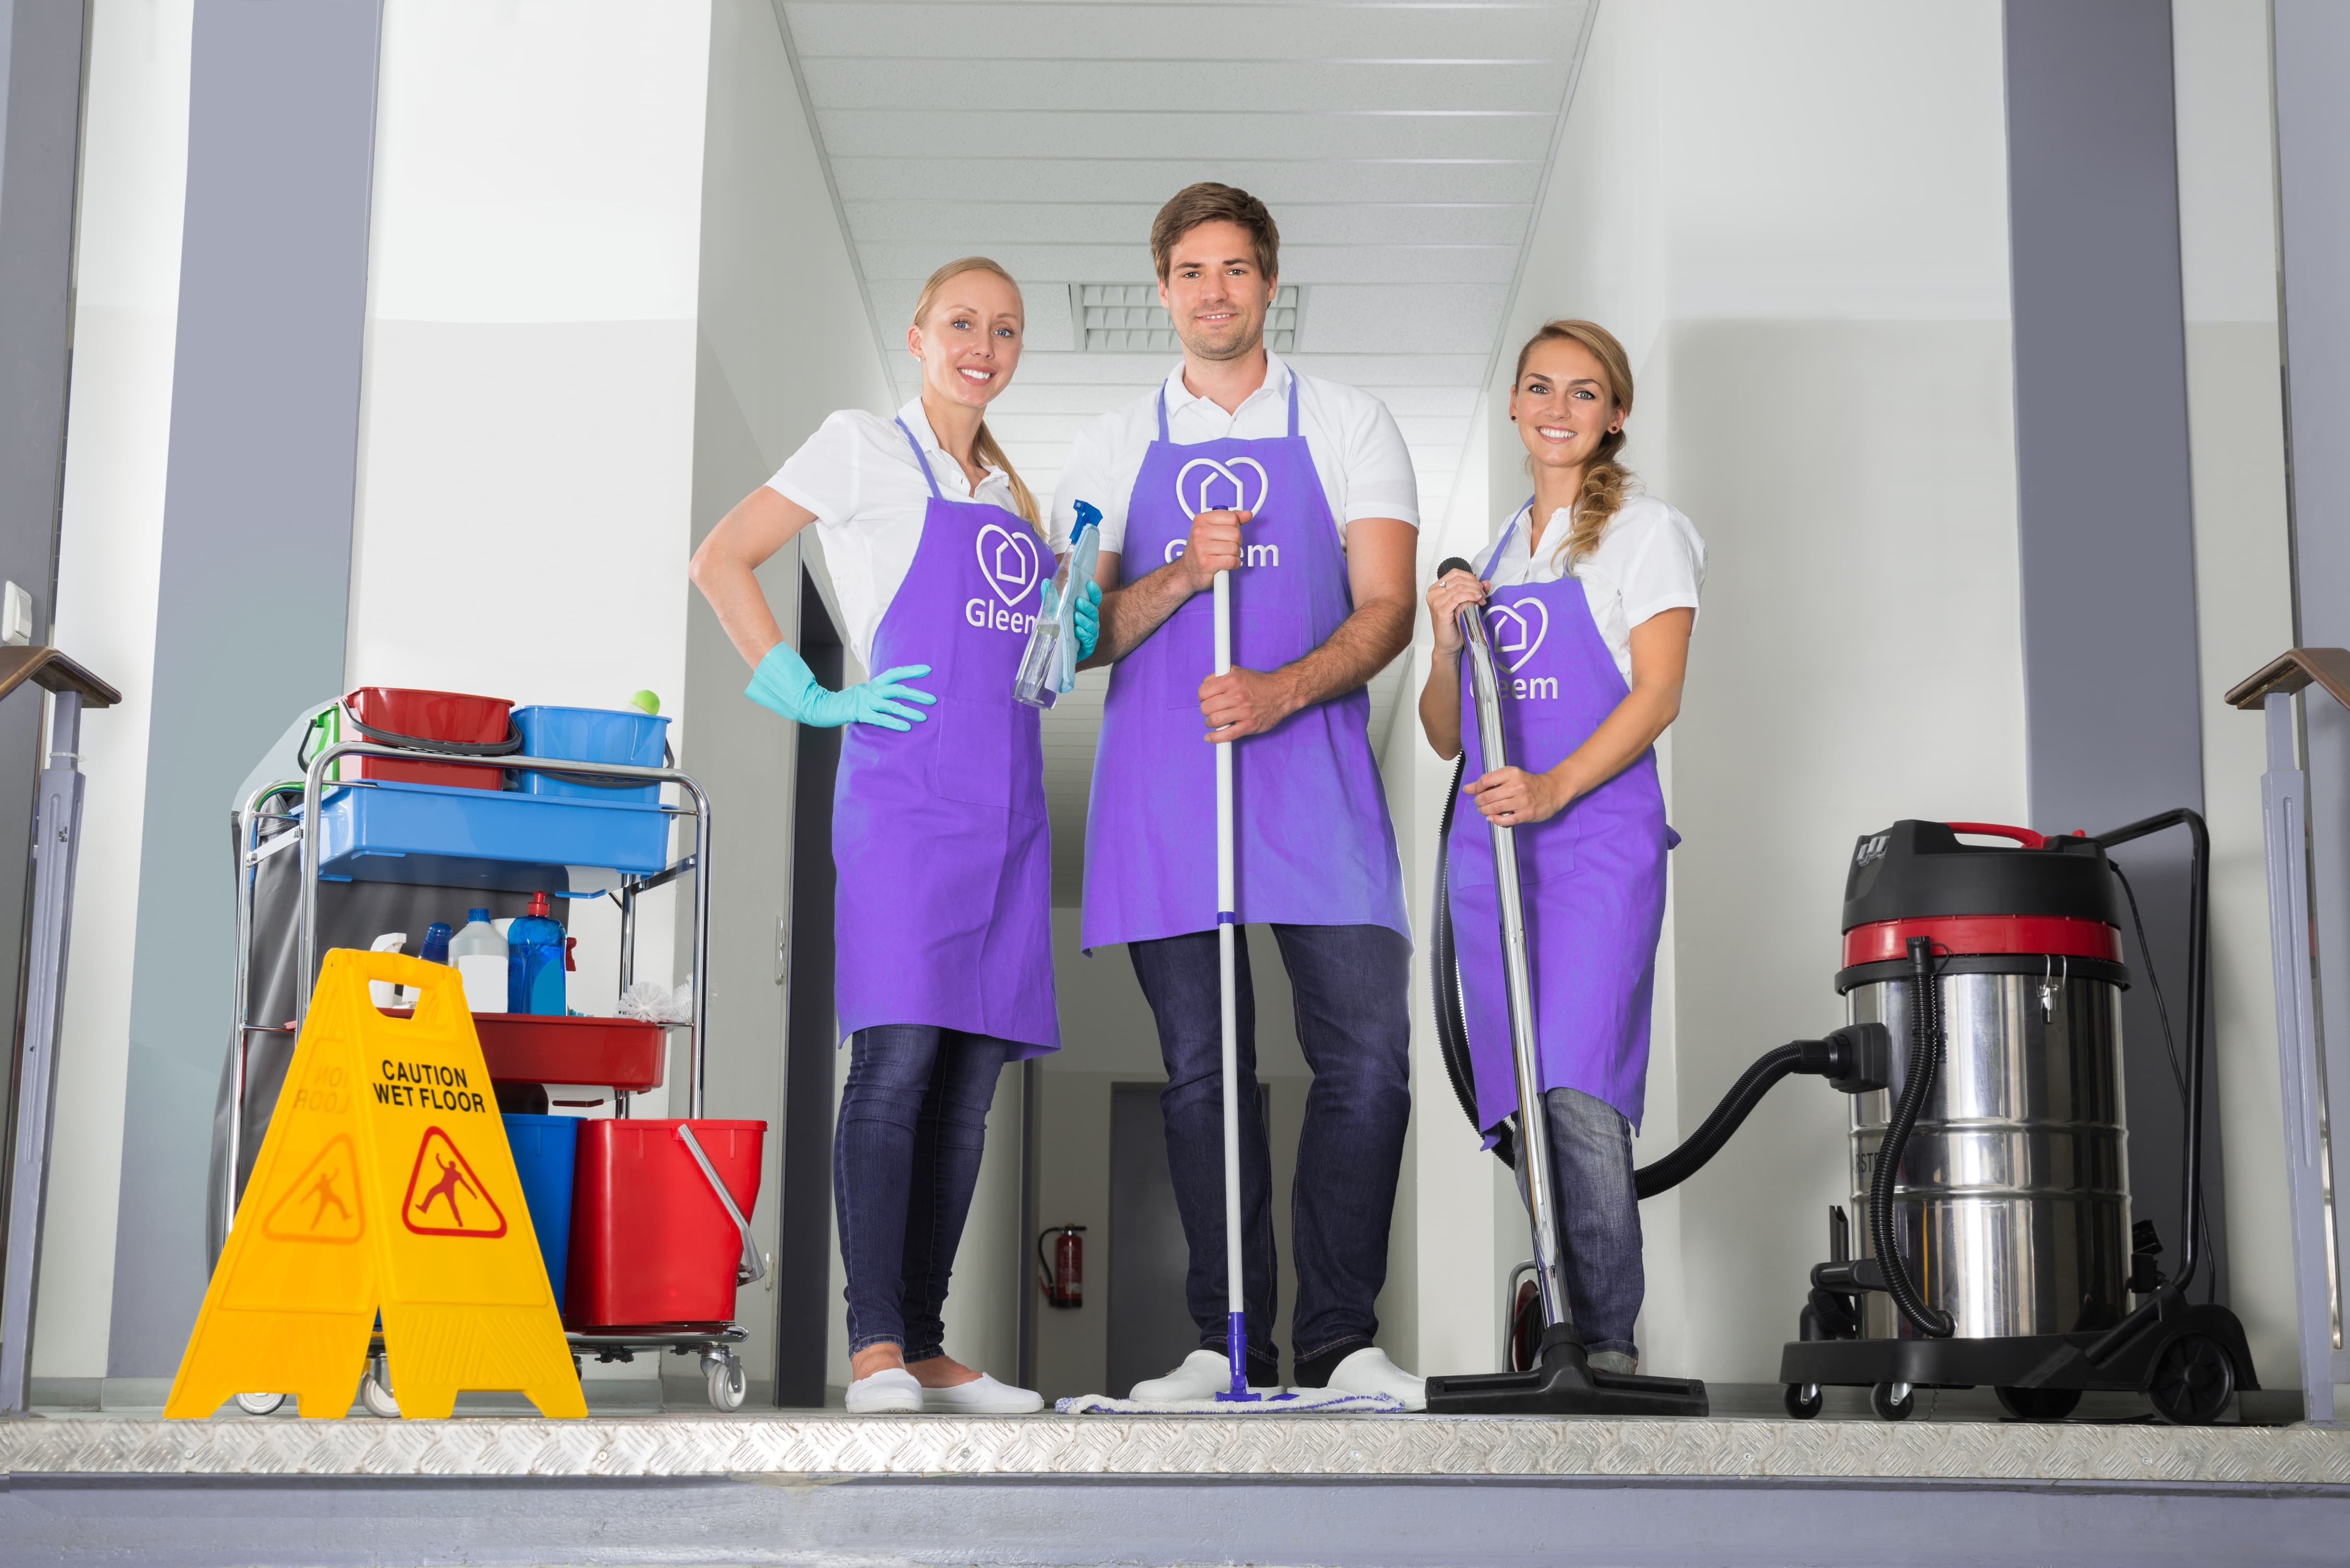 3 Gleem Commercial Cleaning staff members standing with cleaning equipment..